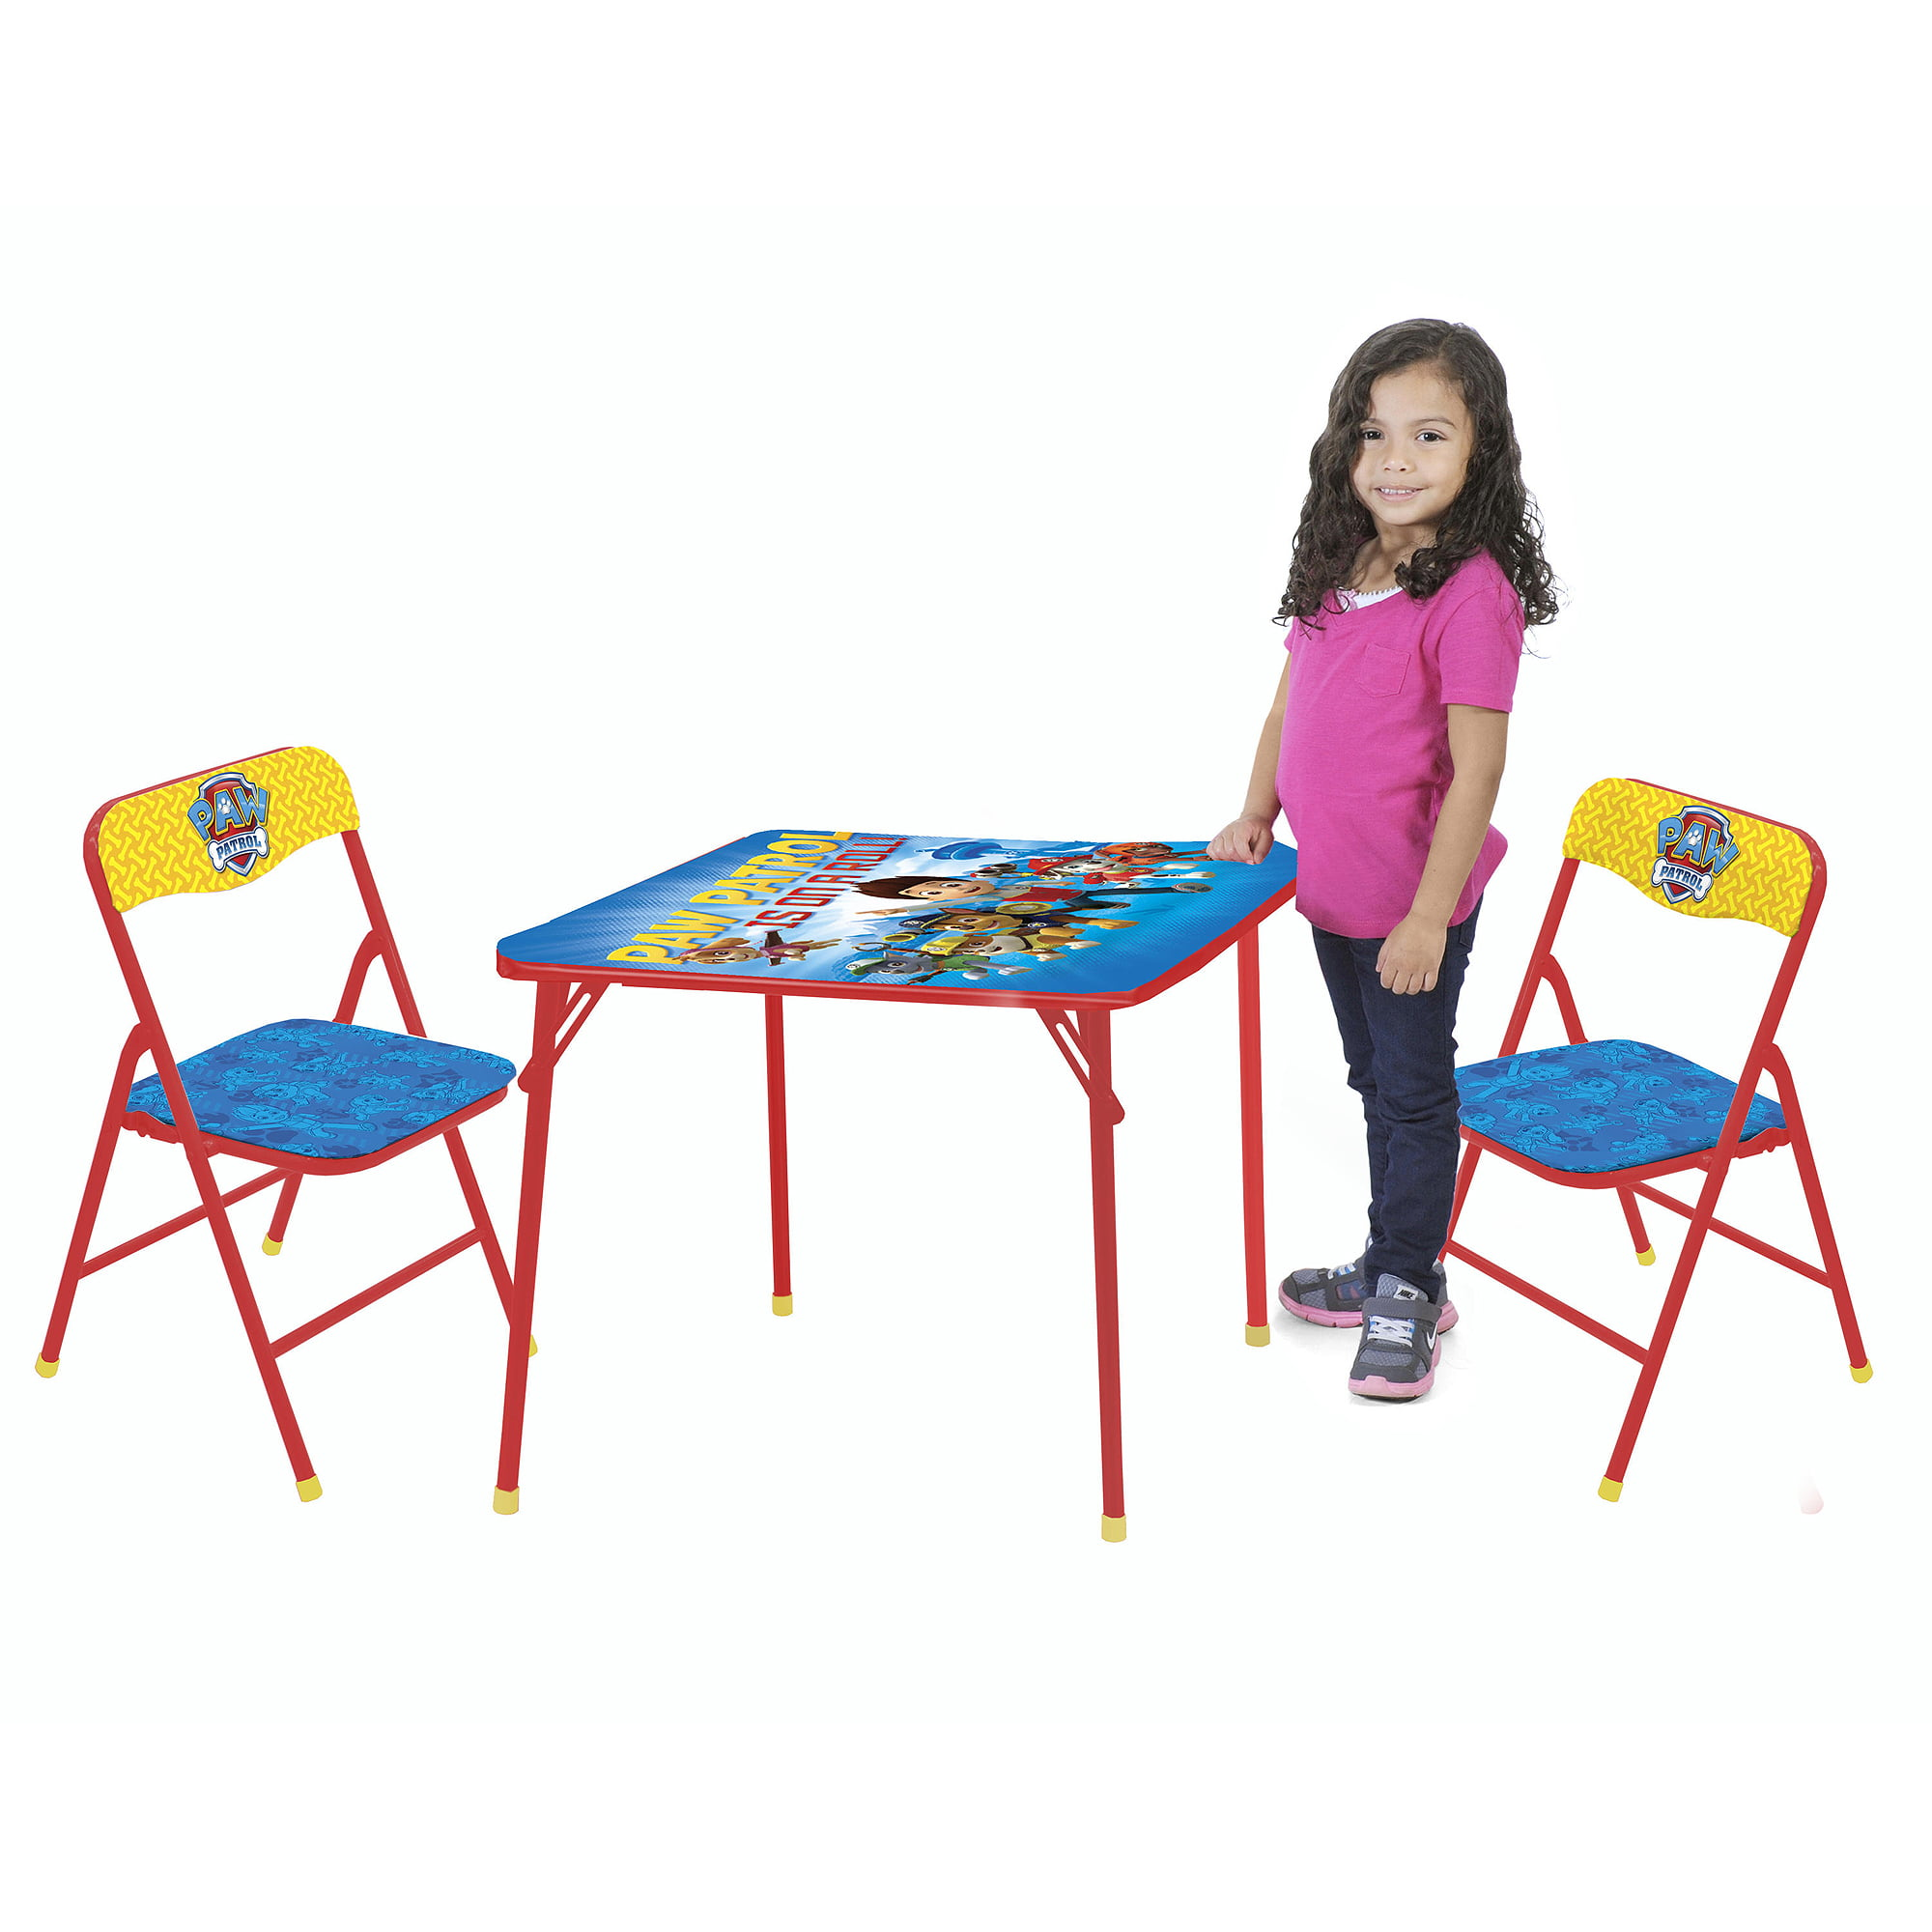 for picture appealing frozen kid child toddler trends toysus chairs ideas folding table clearance of amazing best chair and set kids xfile